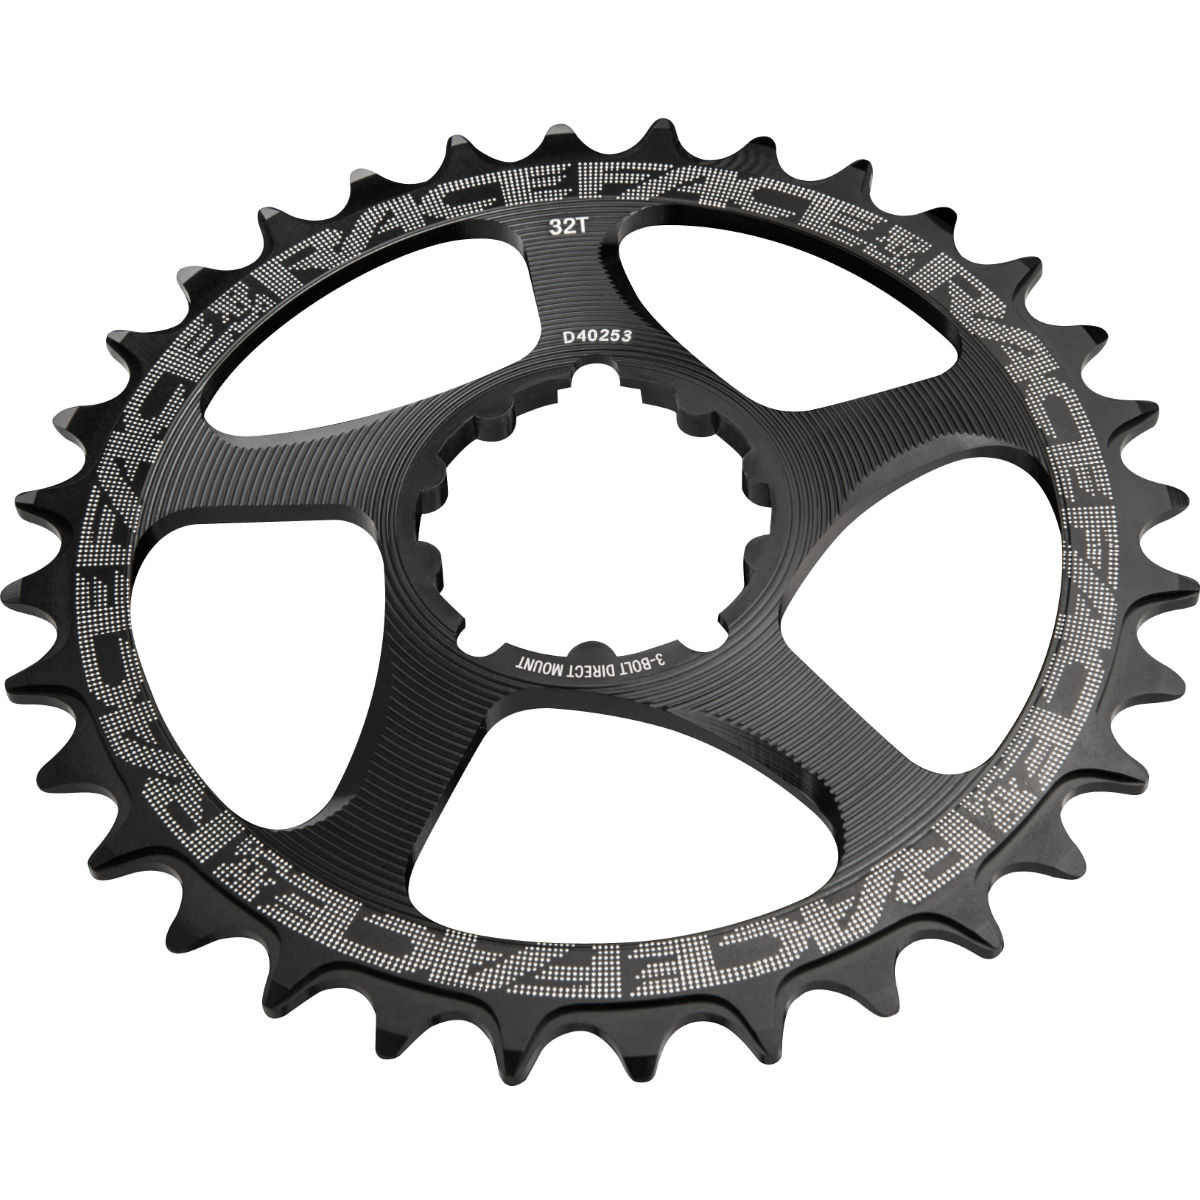 Race Face Direct Mount Sram Narrow/wide Single Chainring - 32t Black